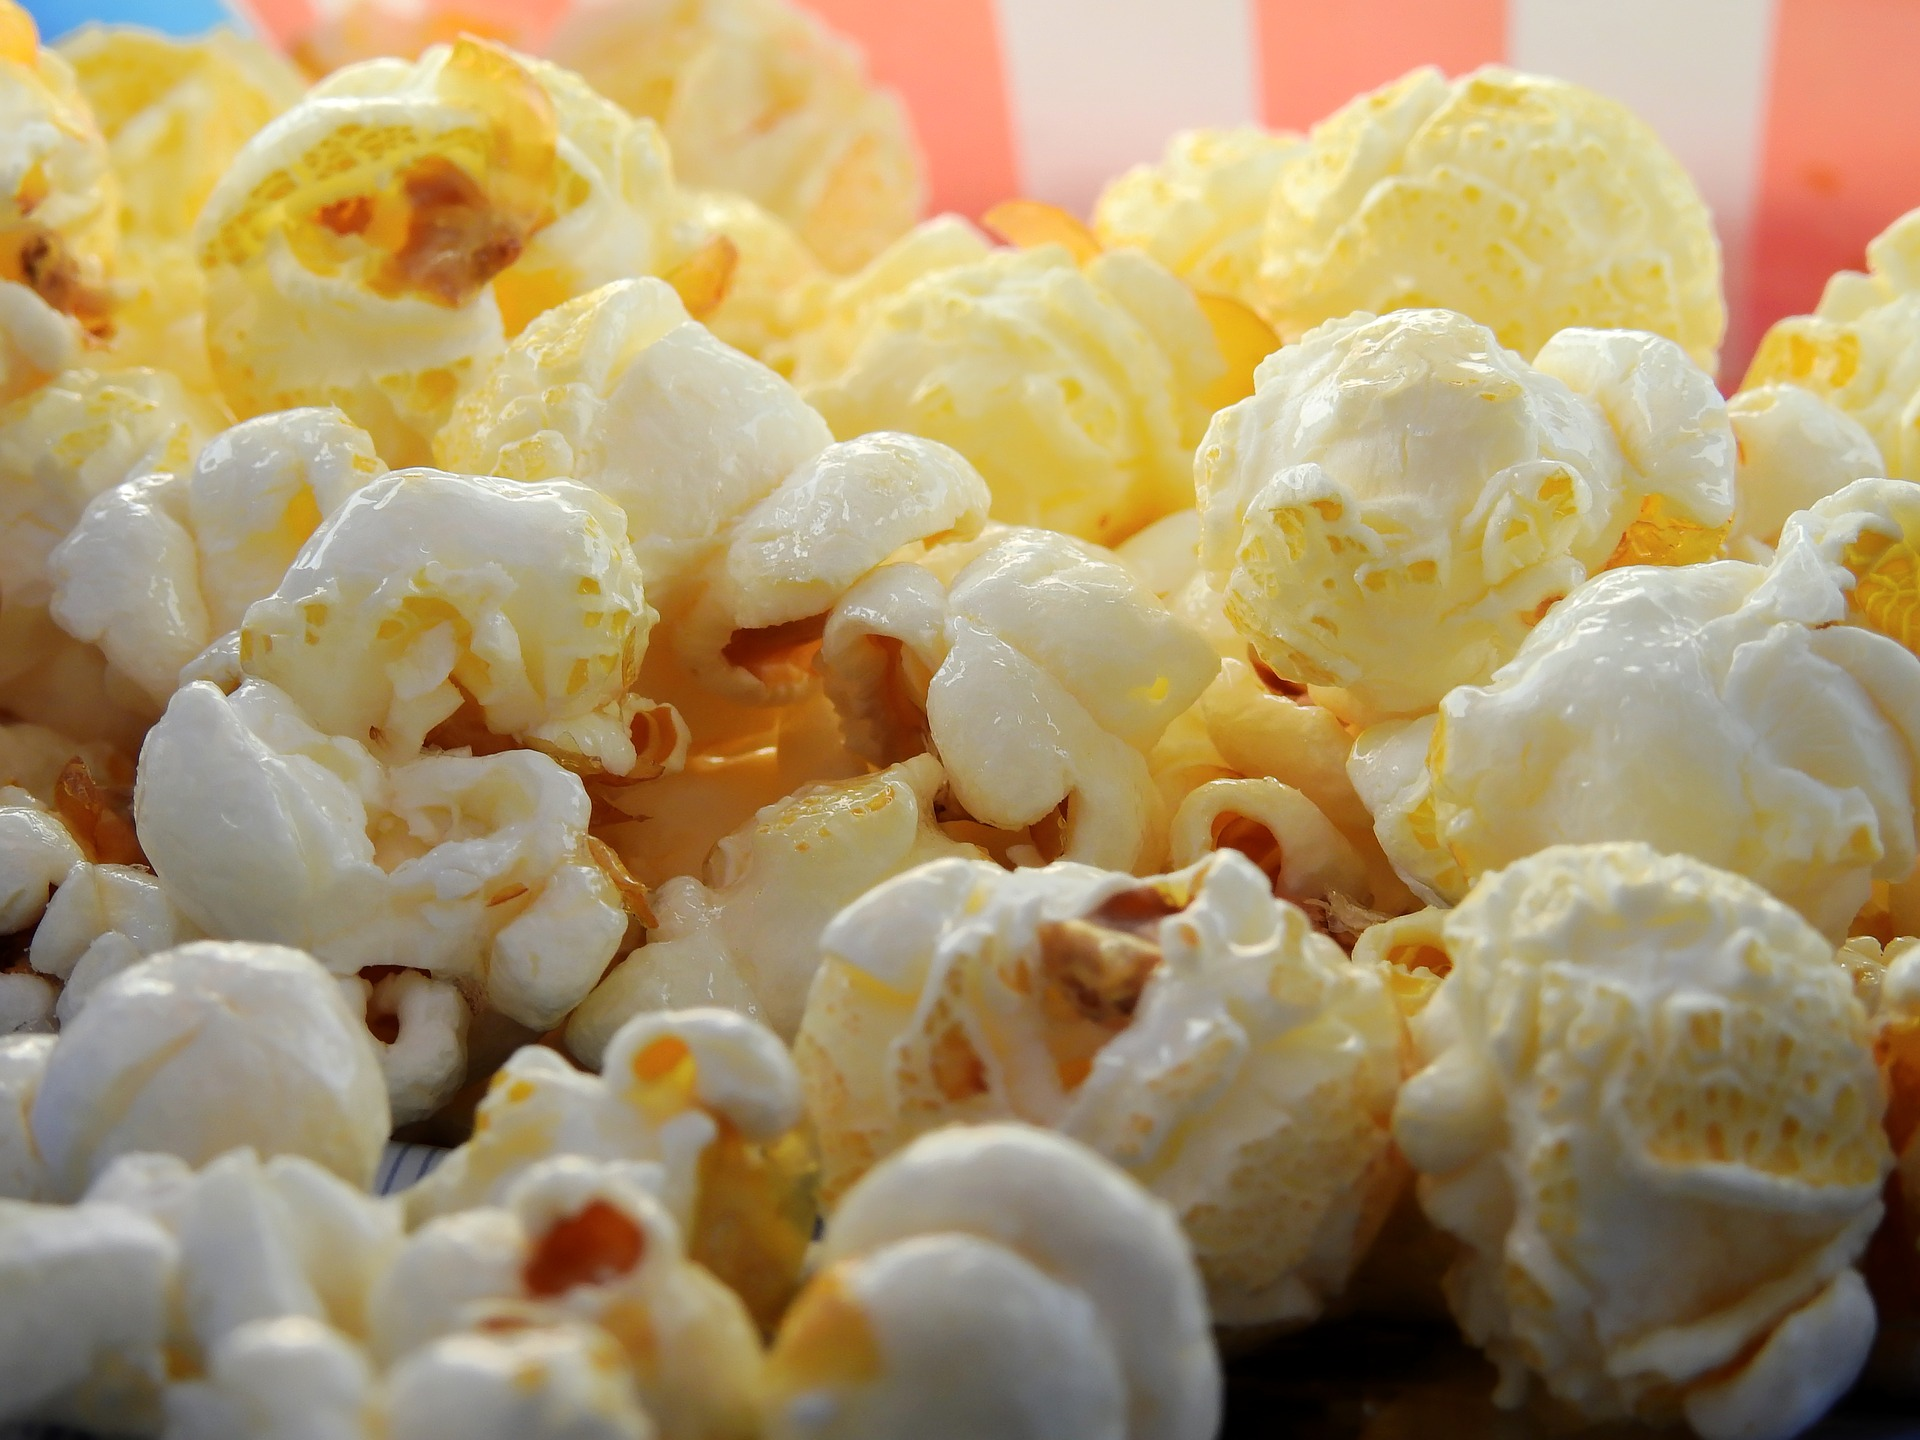 Essay - Memories of Low Tech Popcorn